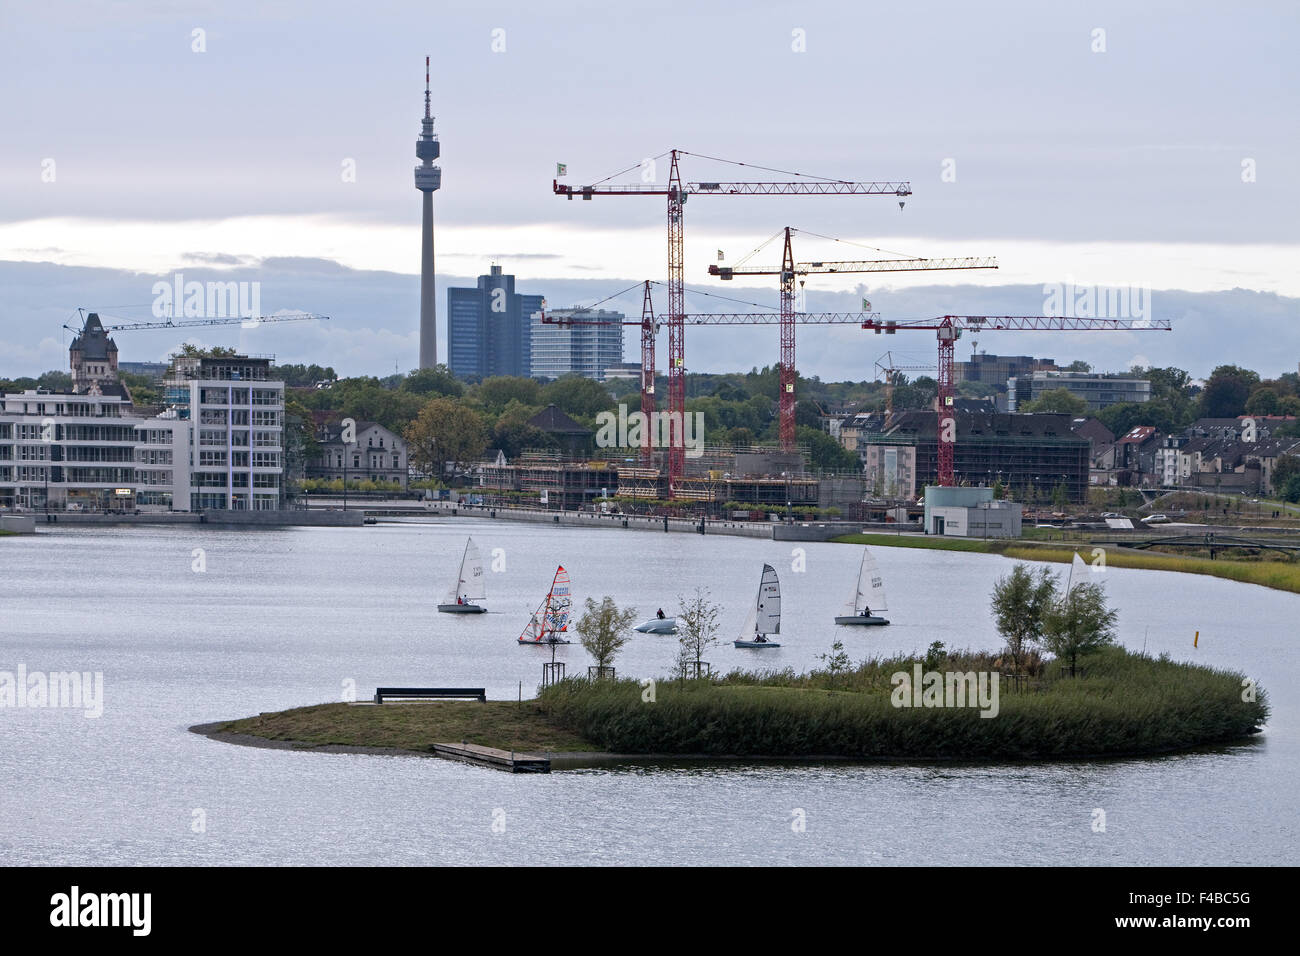 Phoenix Lake with Florian, Dortmund, Germany. - Stock Image